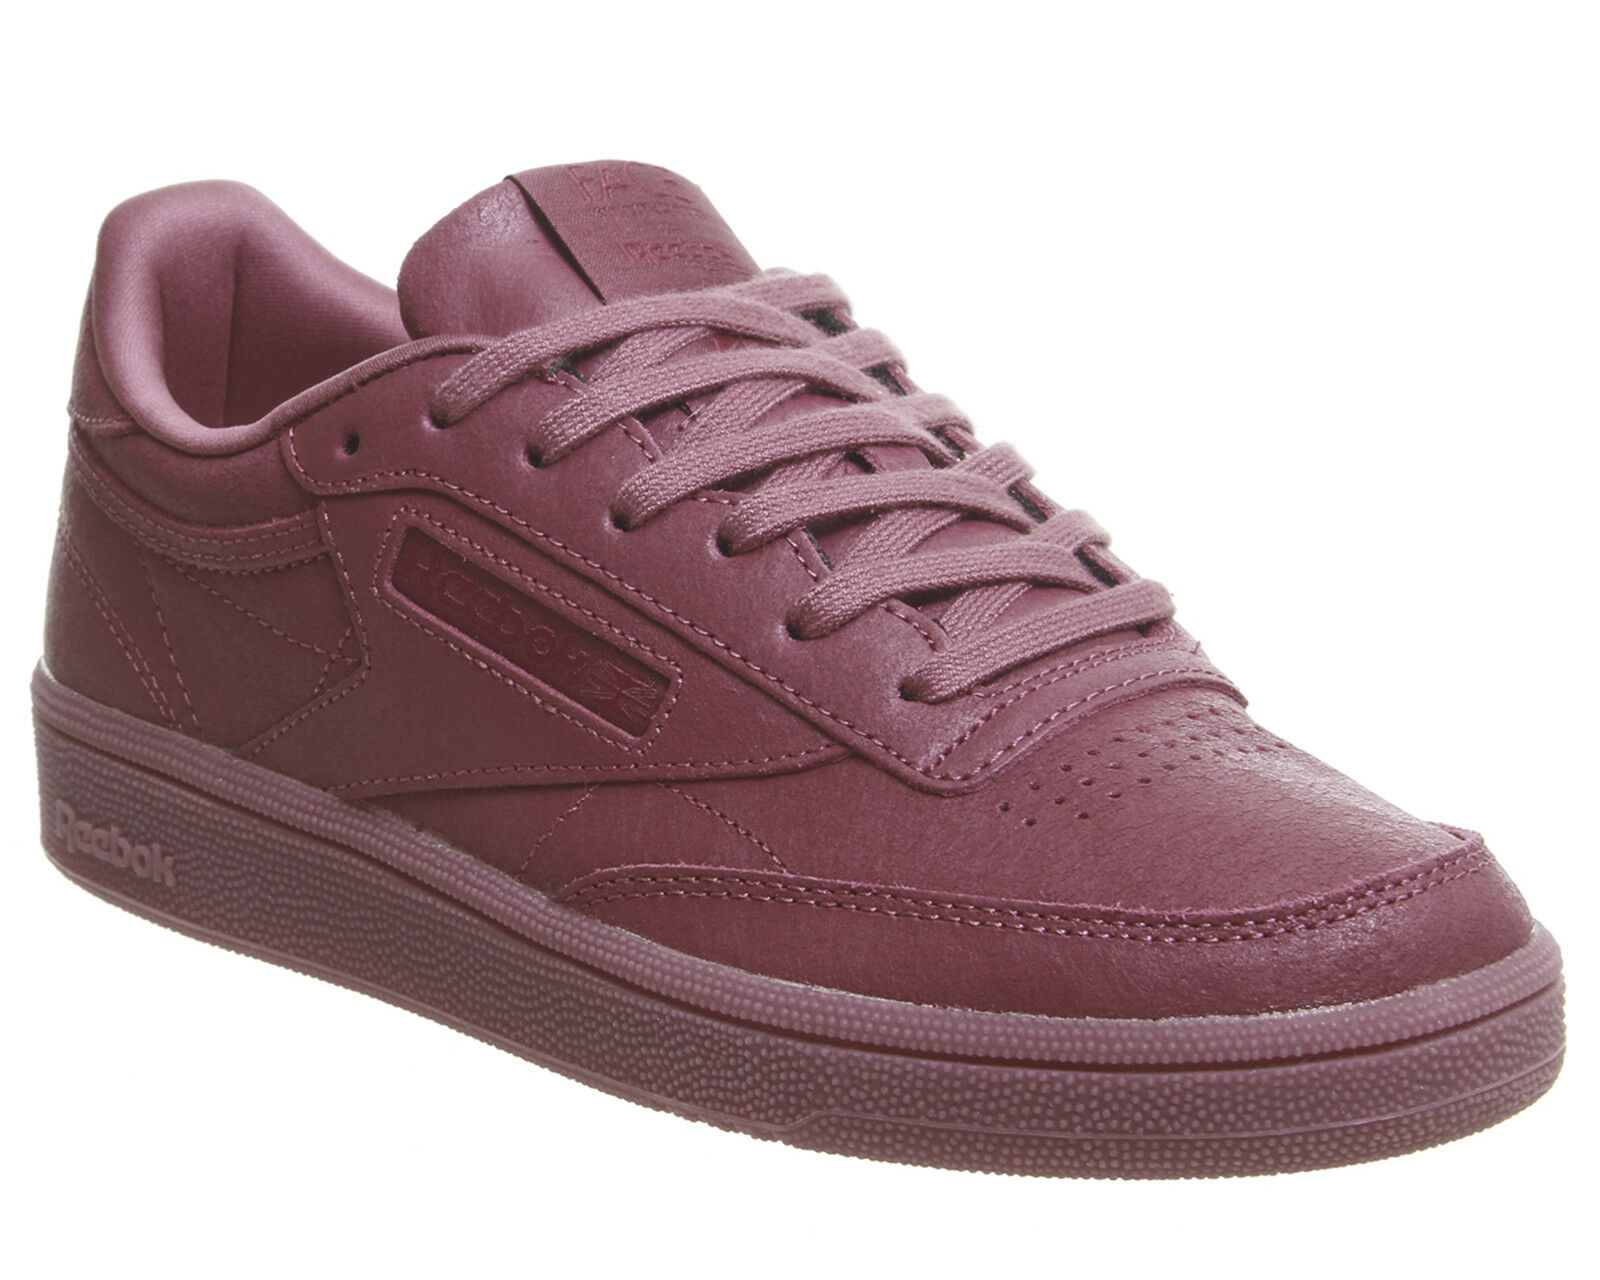 Damenschuhe Reebok Club C 85 Trainers FACE TWISTED BERRY Weiß Trainers Schuhes